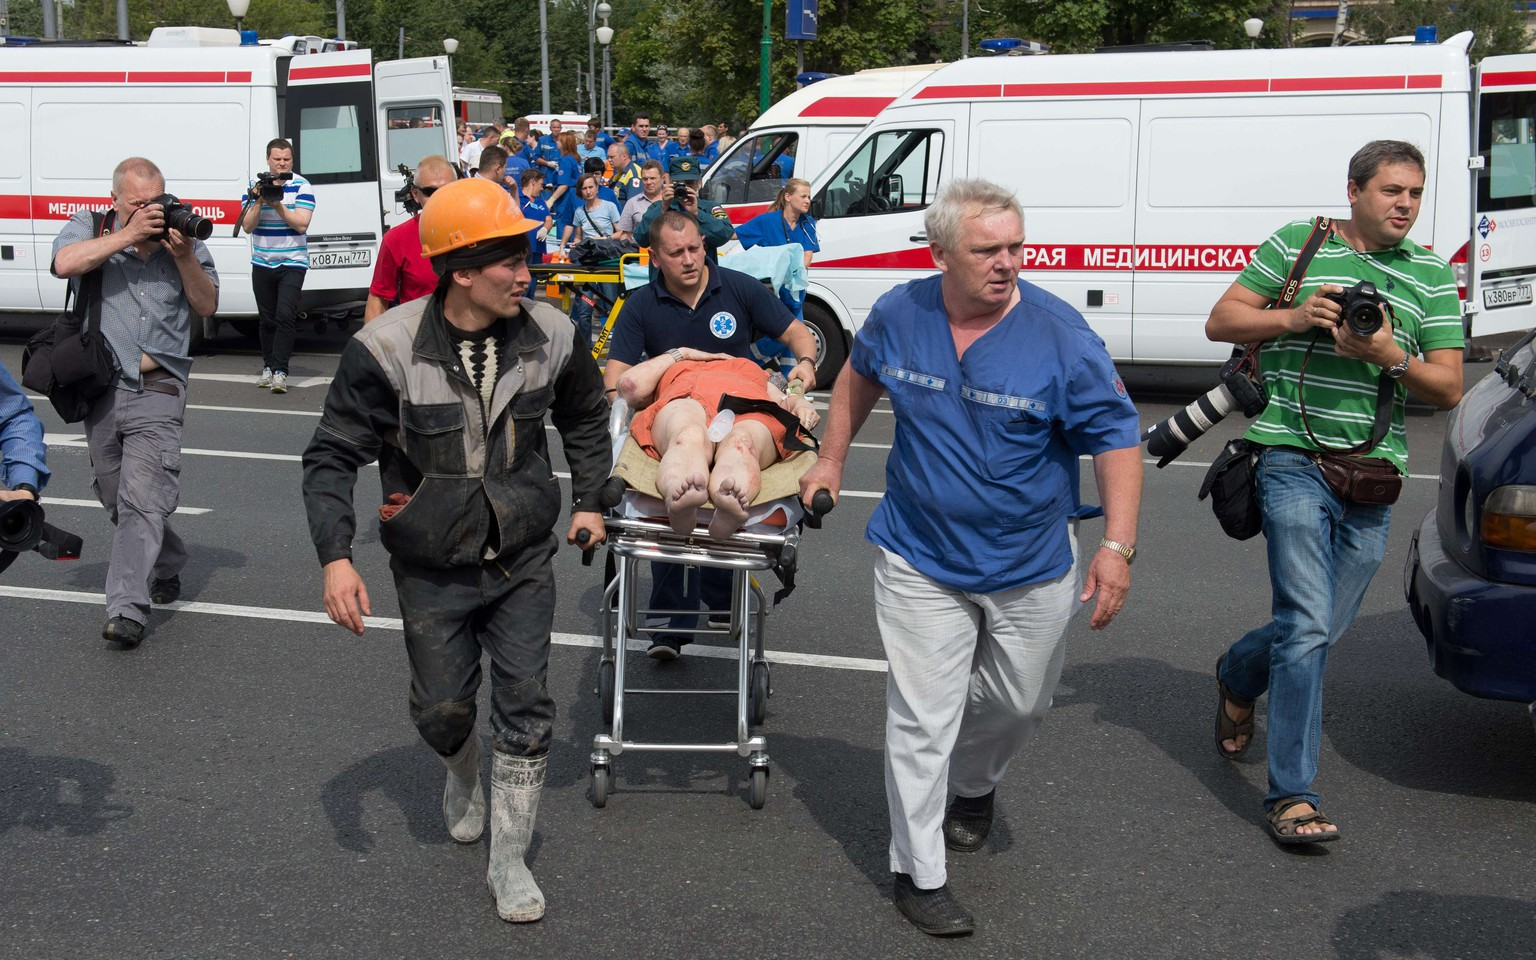 Rescuers and paramedics evacuate passengers injured as several subway cars derailed in Moscow, on July 15, 2014. Three people died and dozens were injured today after a train derailed  in the Moscow metro in a tunnel between Park Pobedy and Slavyansky Bulvar stations, in the west of Moscow, city authorities said. AFP PHOTO / DMITRY SEREBRYAKOV